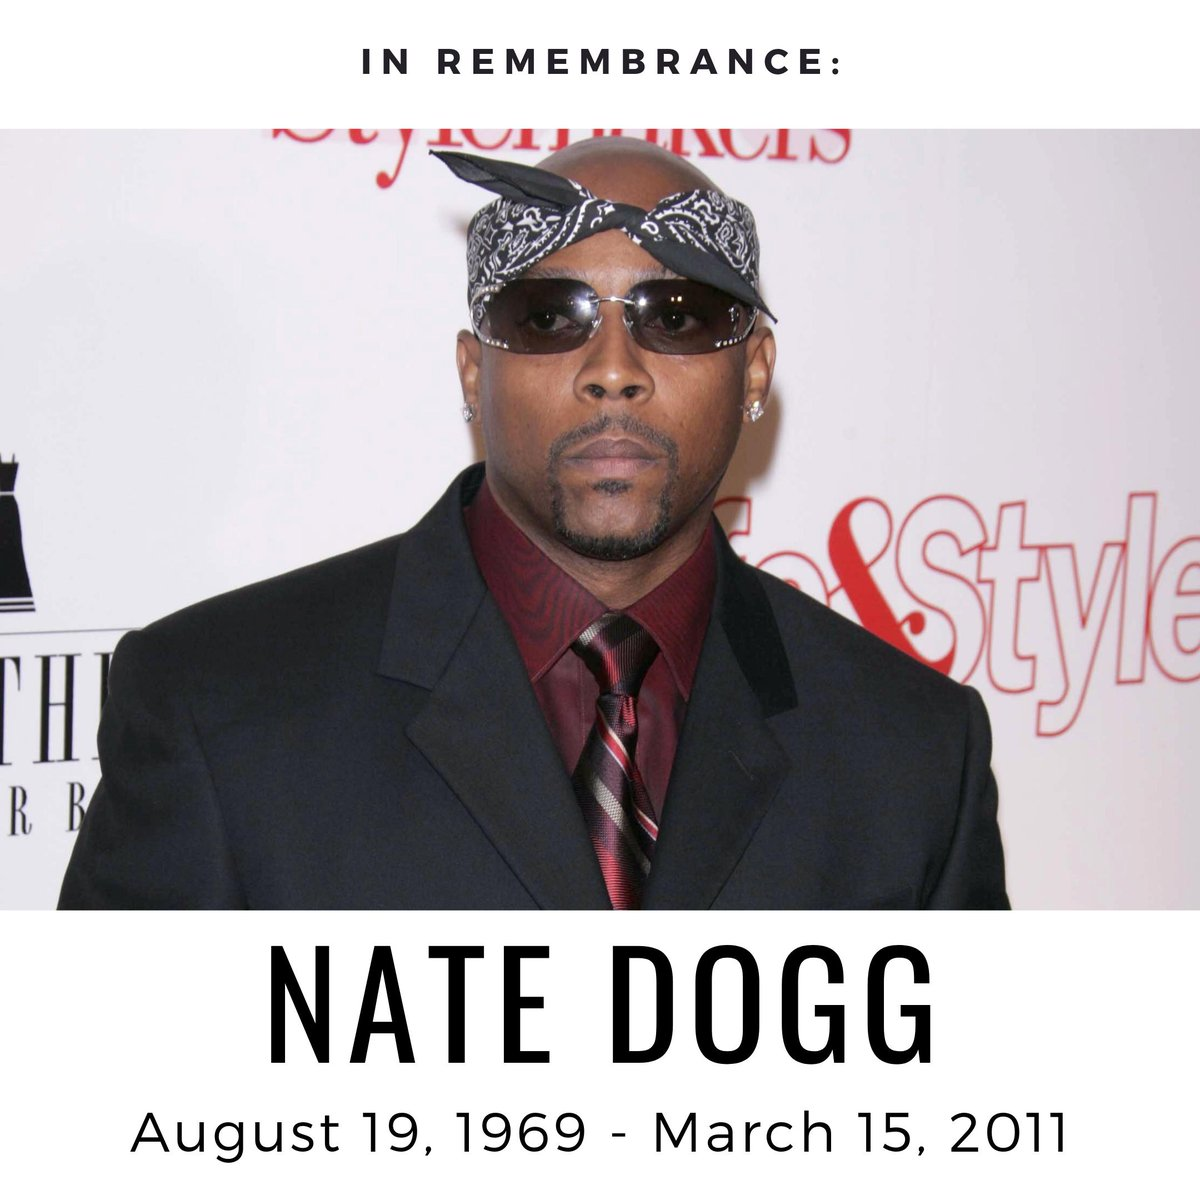 REST IN PEACE: We're remembering Nate Dogg. Today would have been his 50th birthday #RIP<br>http://pic.twitter.com/9W3GMrYSuQ